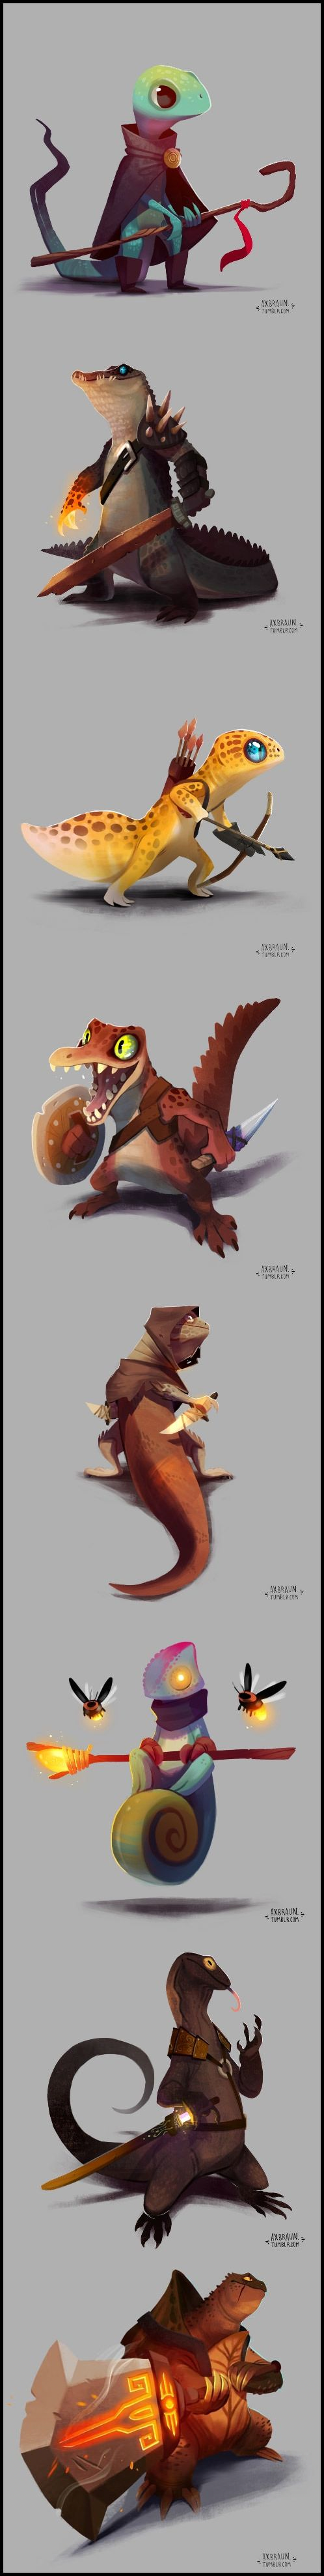 RPG Reptiles by Alex Braun (the snapping turtle is my favourite) - 9GAG